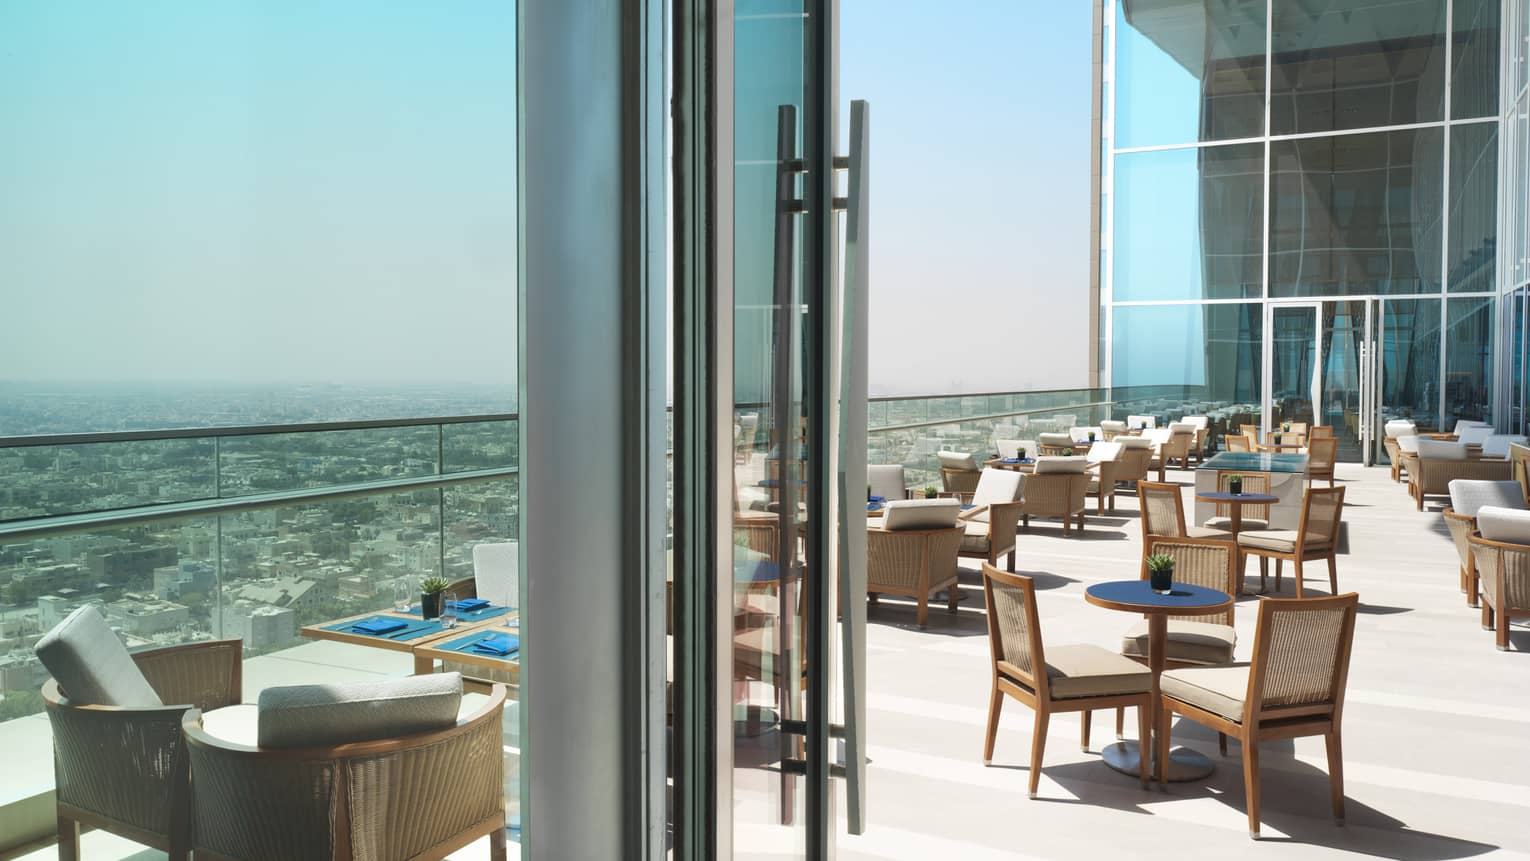 Dining tables and chairs on sunny patio high up on high rise, glass balcony overlooking Kuwait city